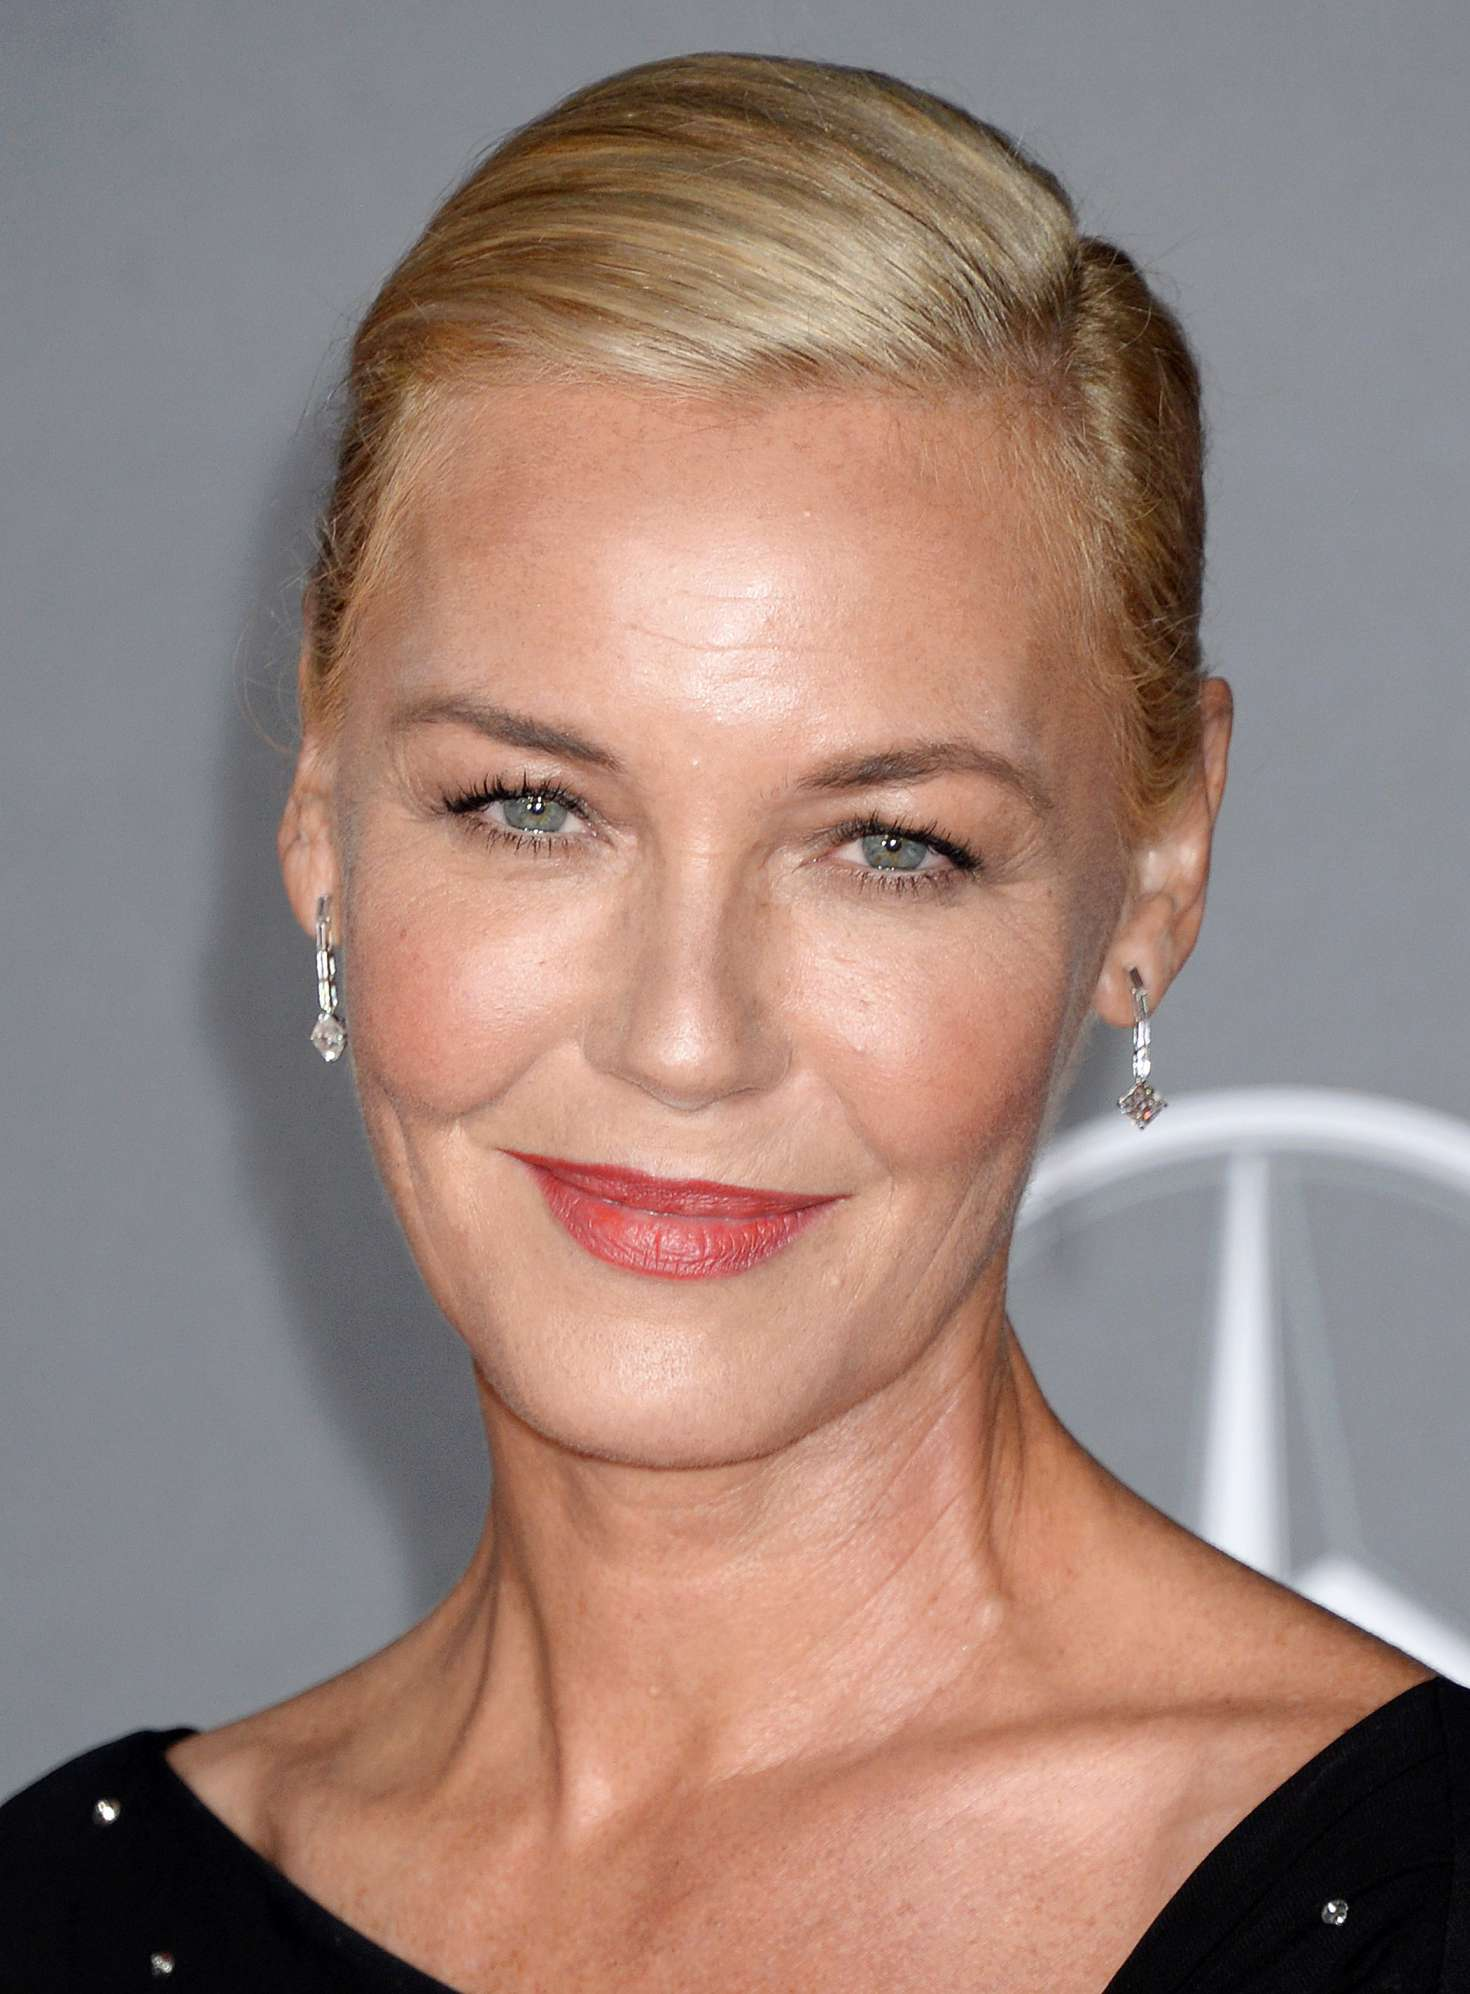 Connie Nielsen Denmark Actress